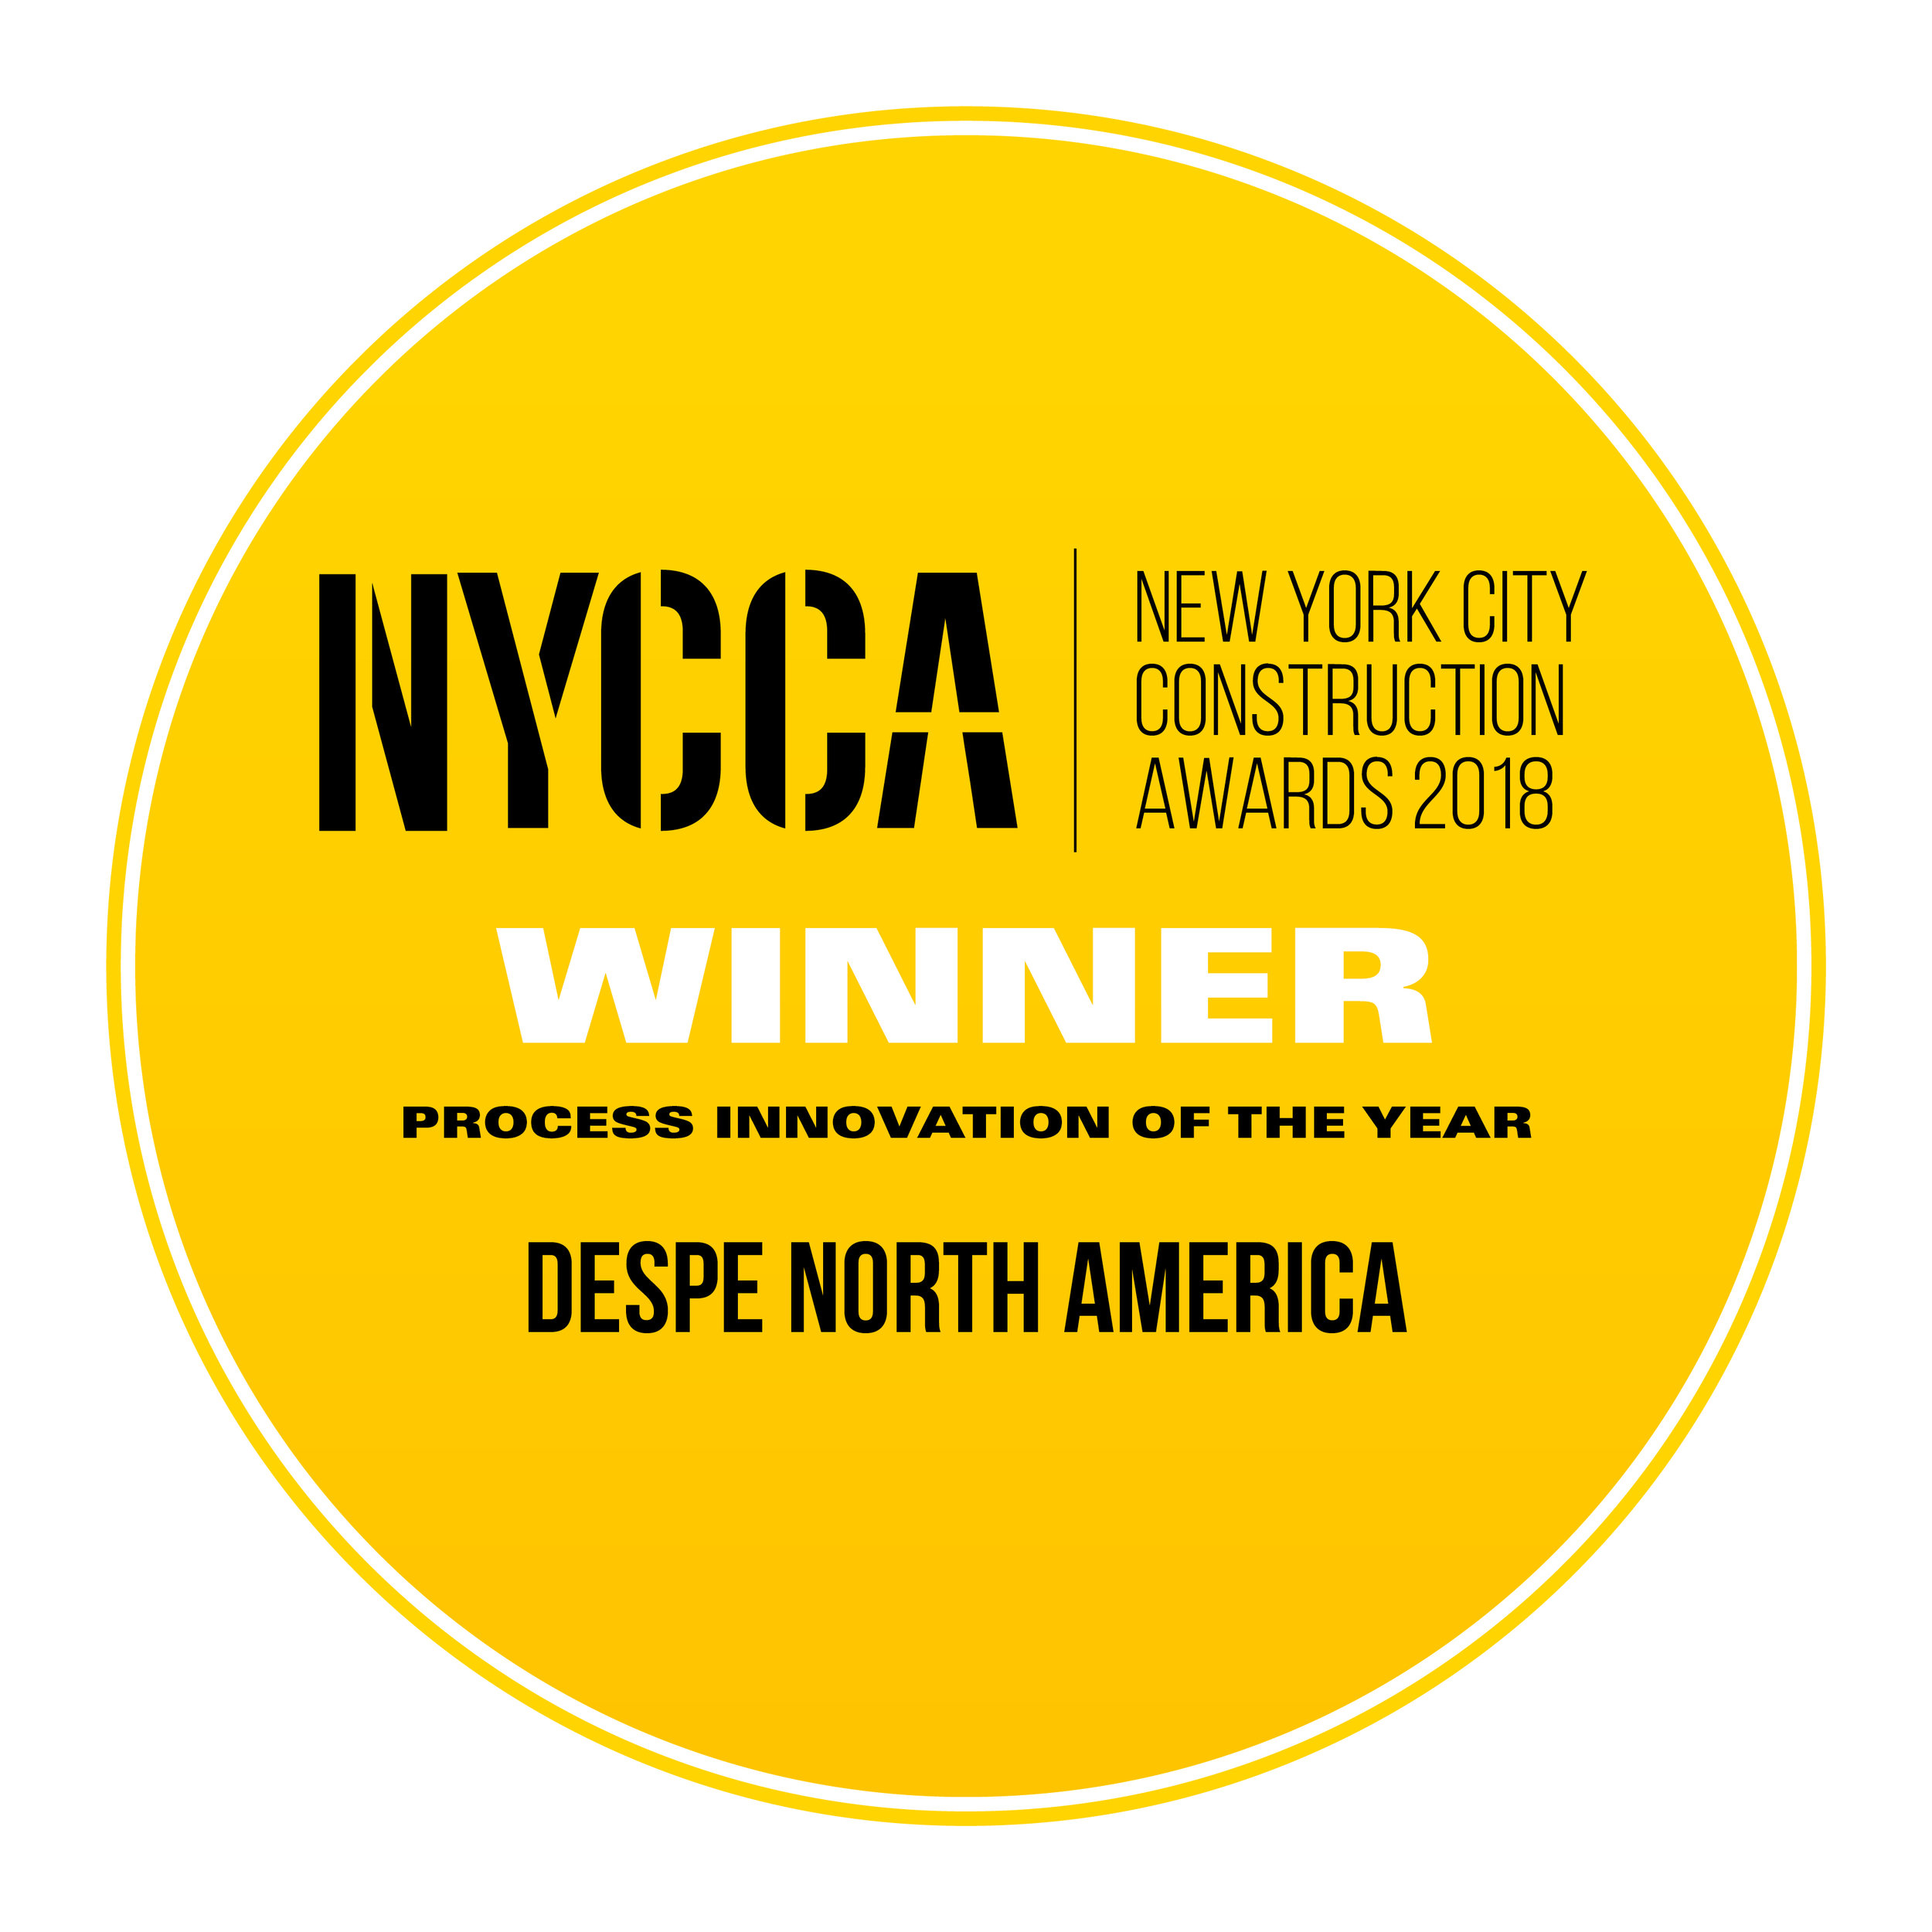 Despe North America - Process Innovation of the Year